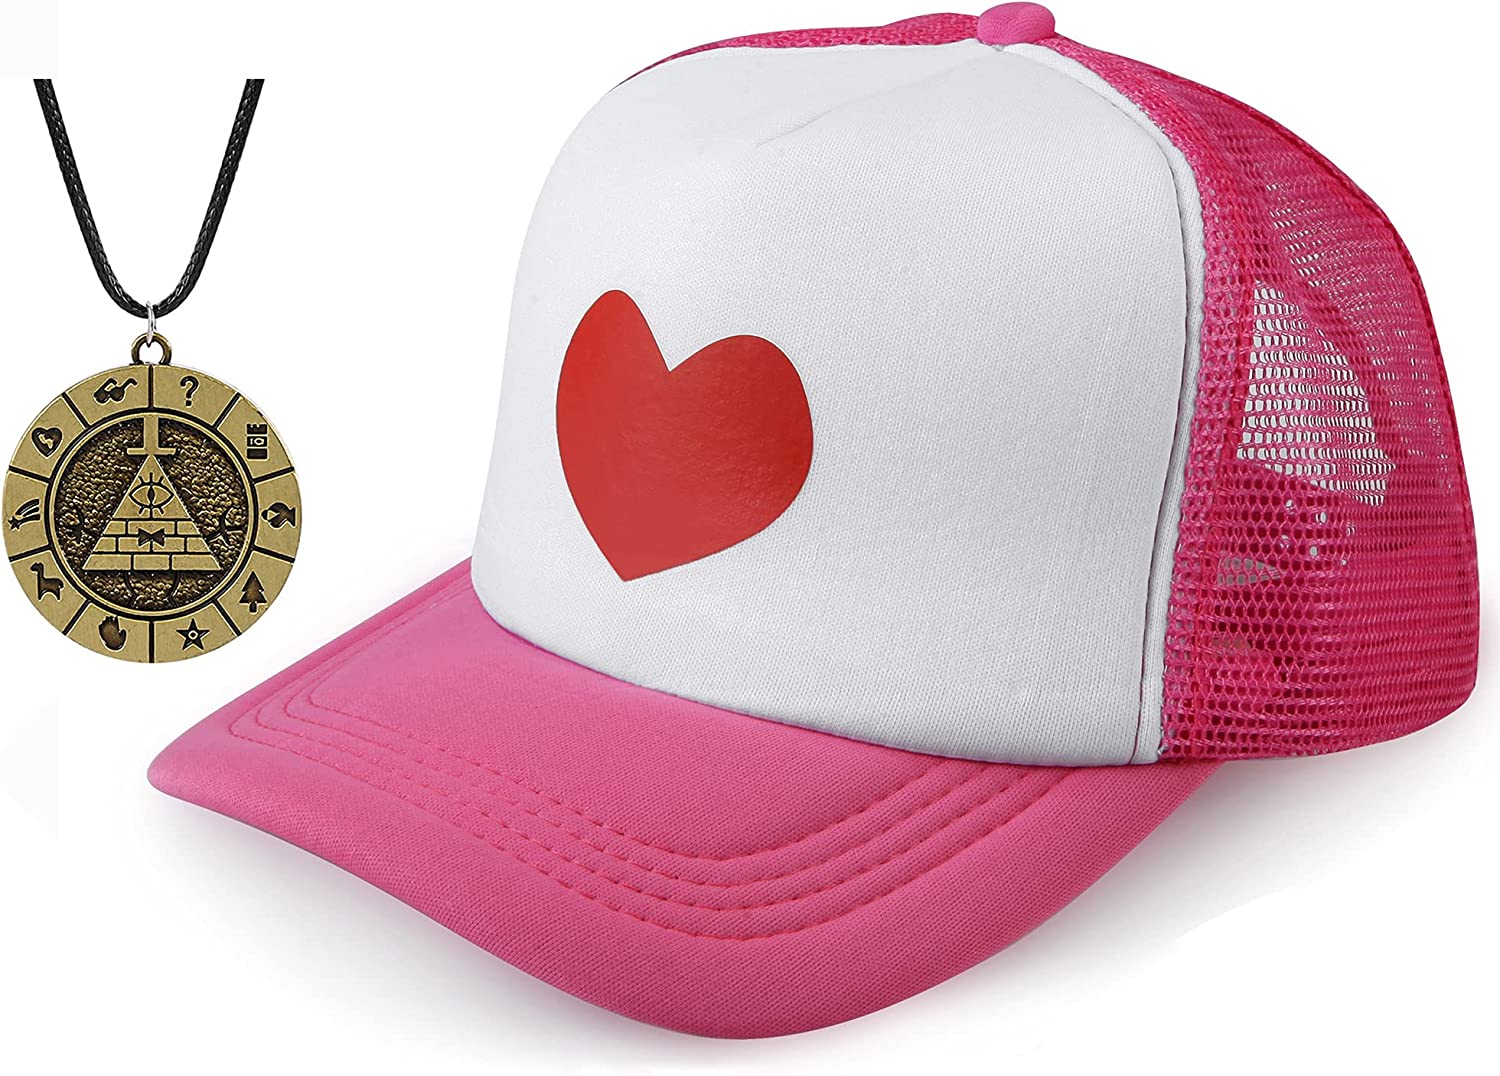 EIKOU Gravity Falls Mabel's Hat Pink Dipper's Hat Pink Dipper Aqua Blue Pine Hat Embroidered【Come with The Necklace】